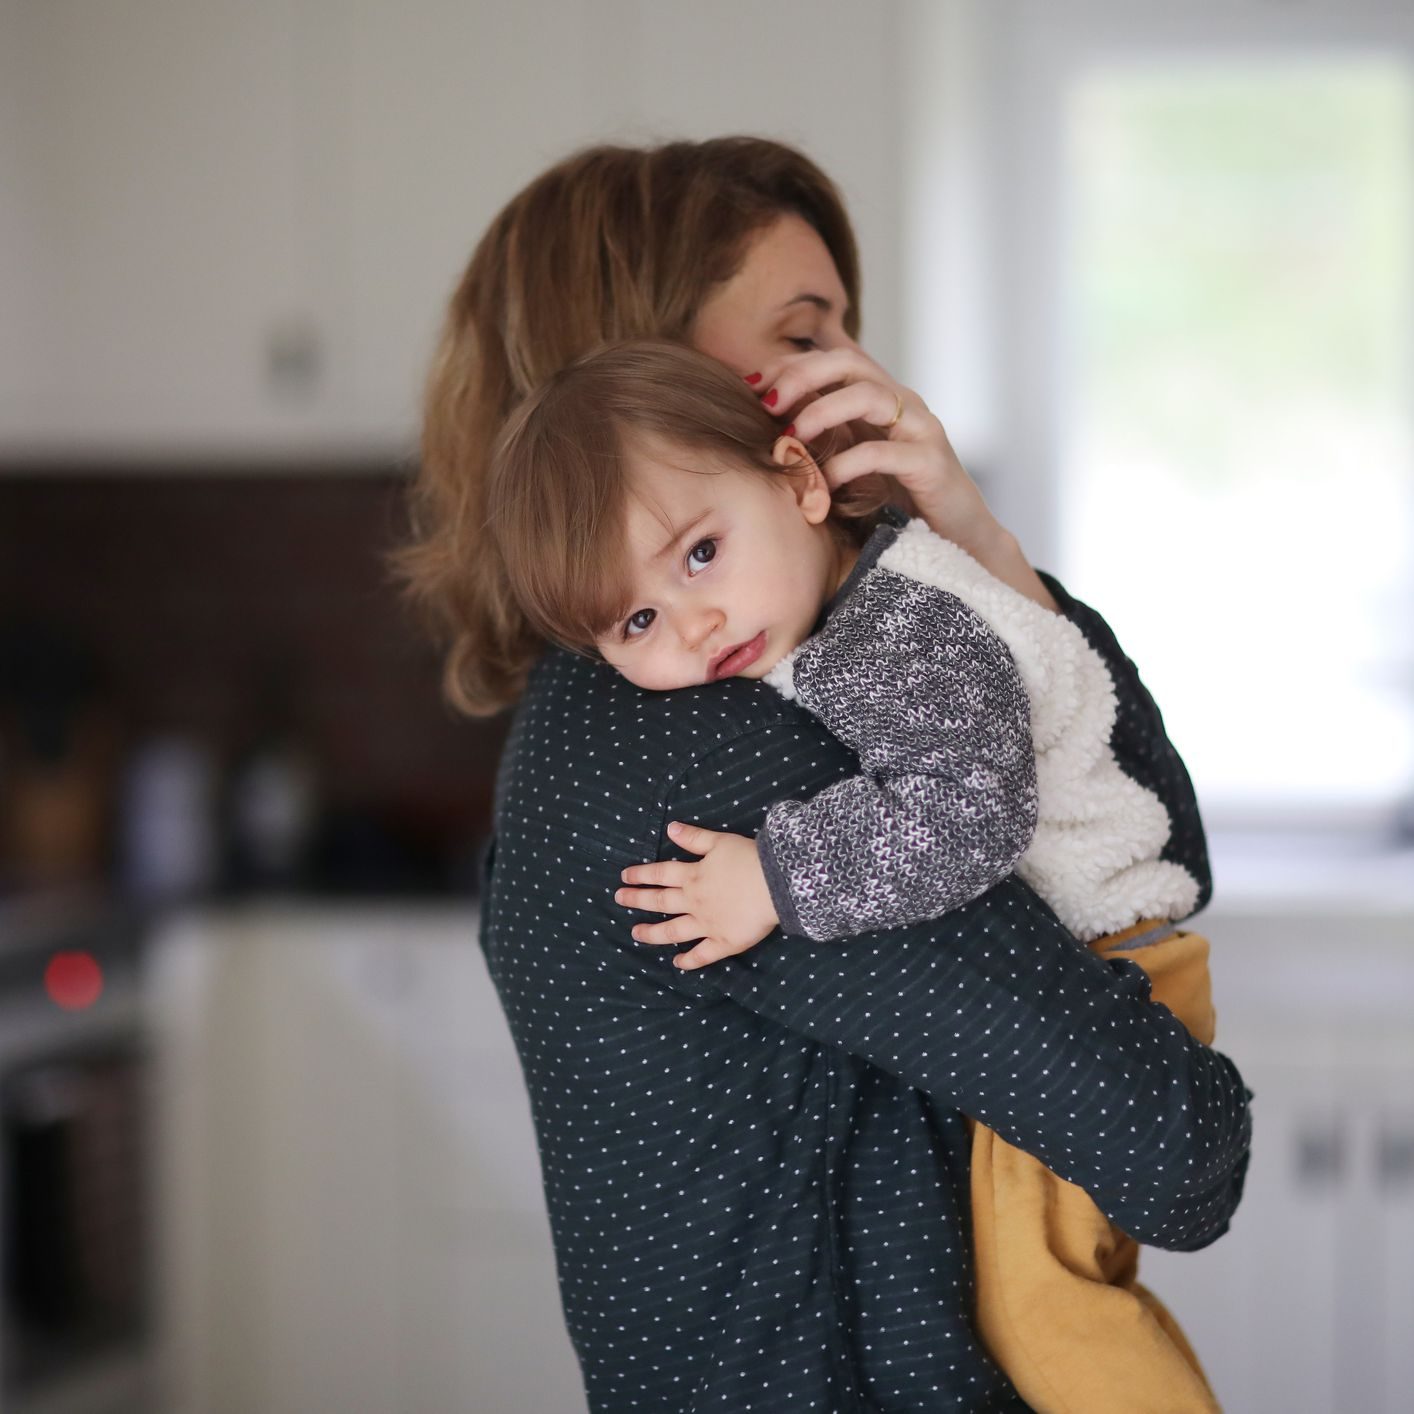 The Motherhood Penalty Can Take a Toll on Women's Career Ambitions